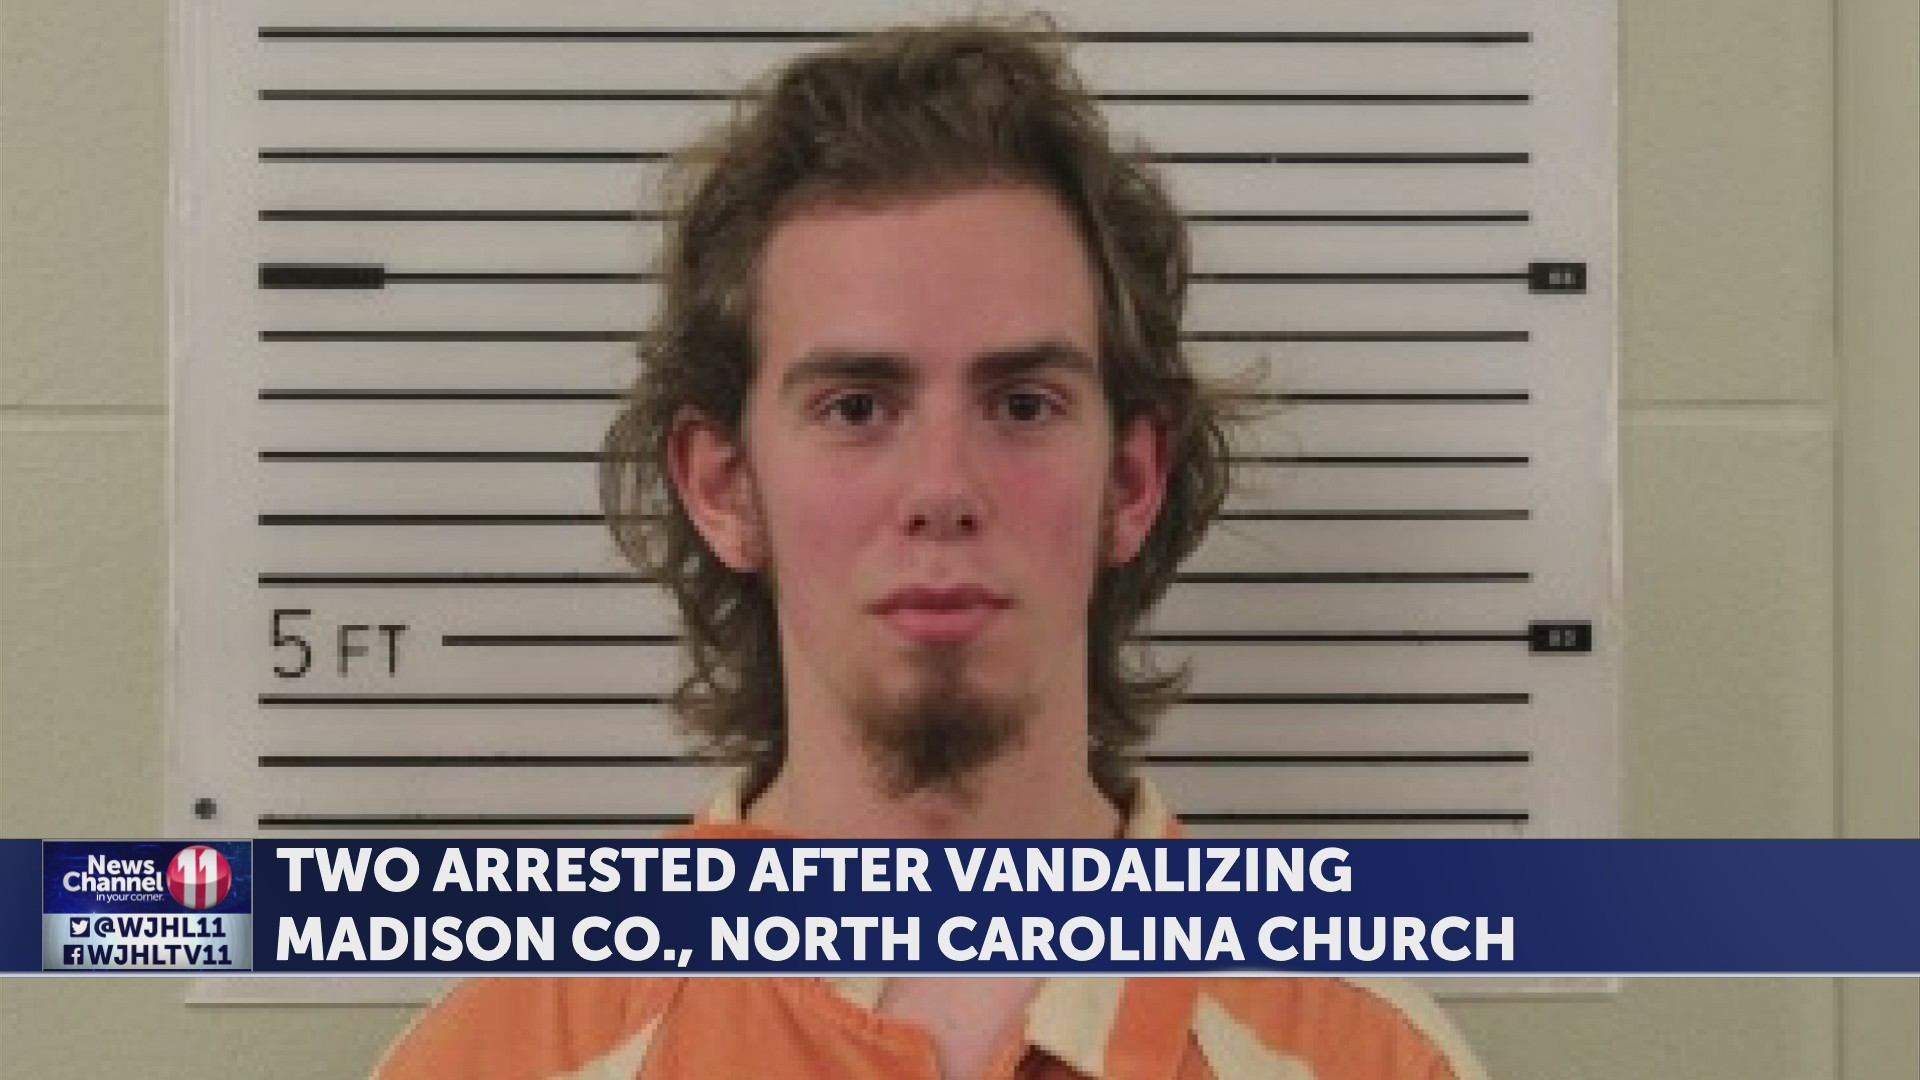 Two arrested after vandalizing Madison Co., NC church